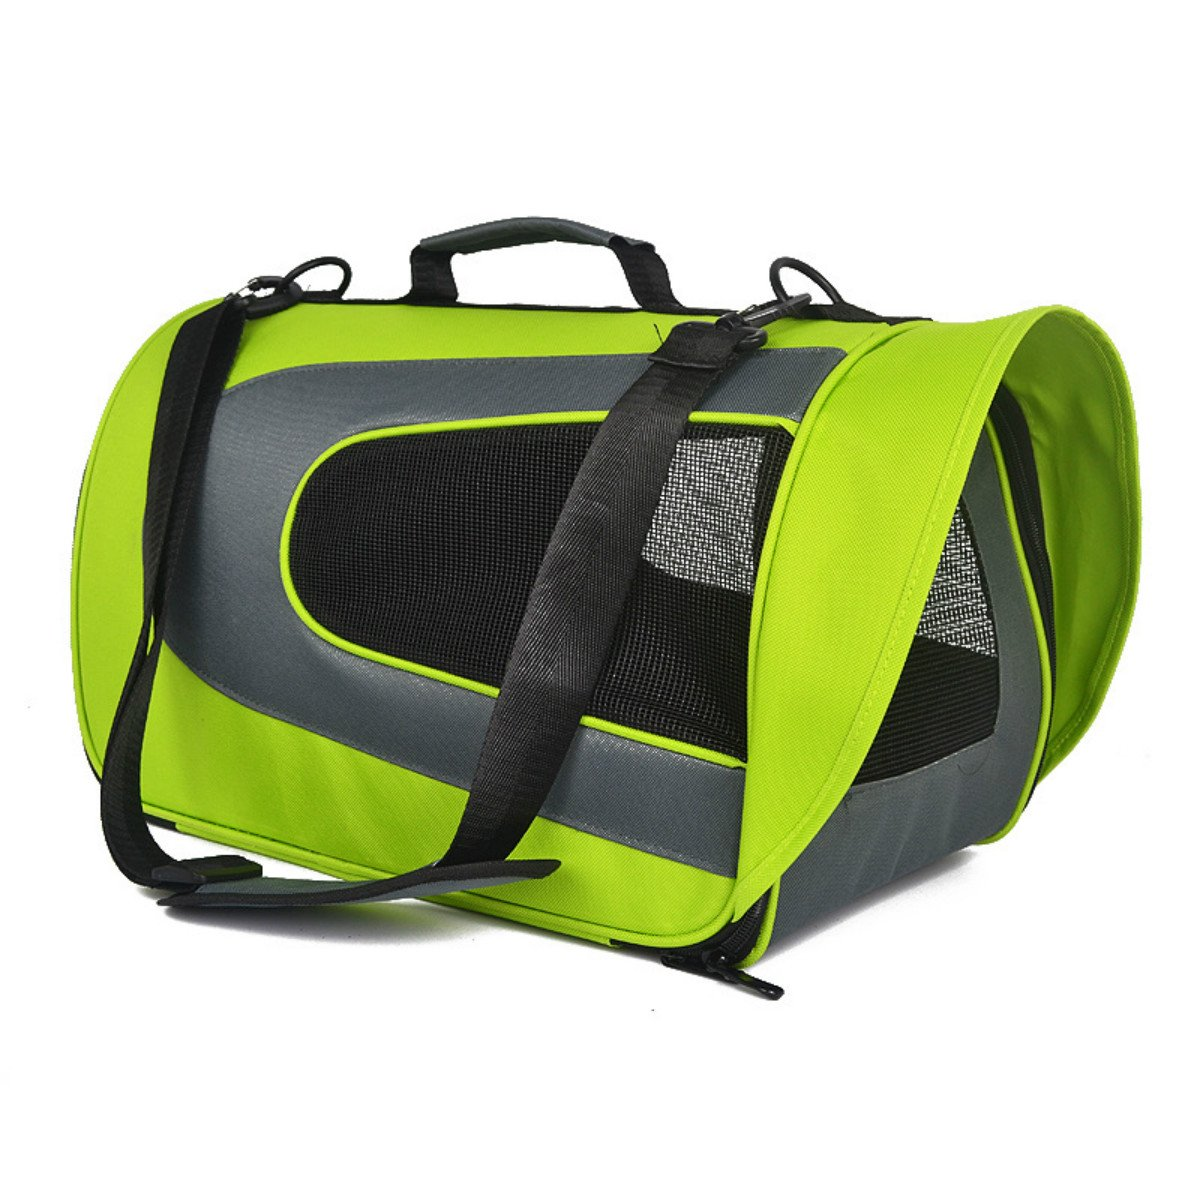 Green 452328cm Green 452328cm None Soft Sided Pet Carrier,Pet Airline Approved Portable Pet Carrier Travel Pet Carrier Puppy Handbag Multiple colors Available Cats Small Dogs,Dog Handbags Small Dogs